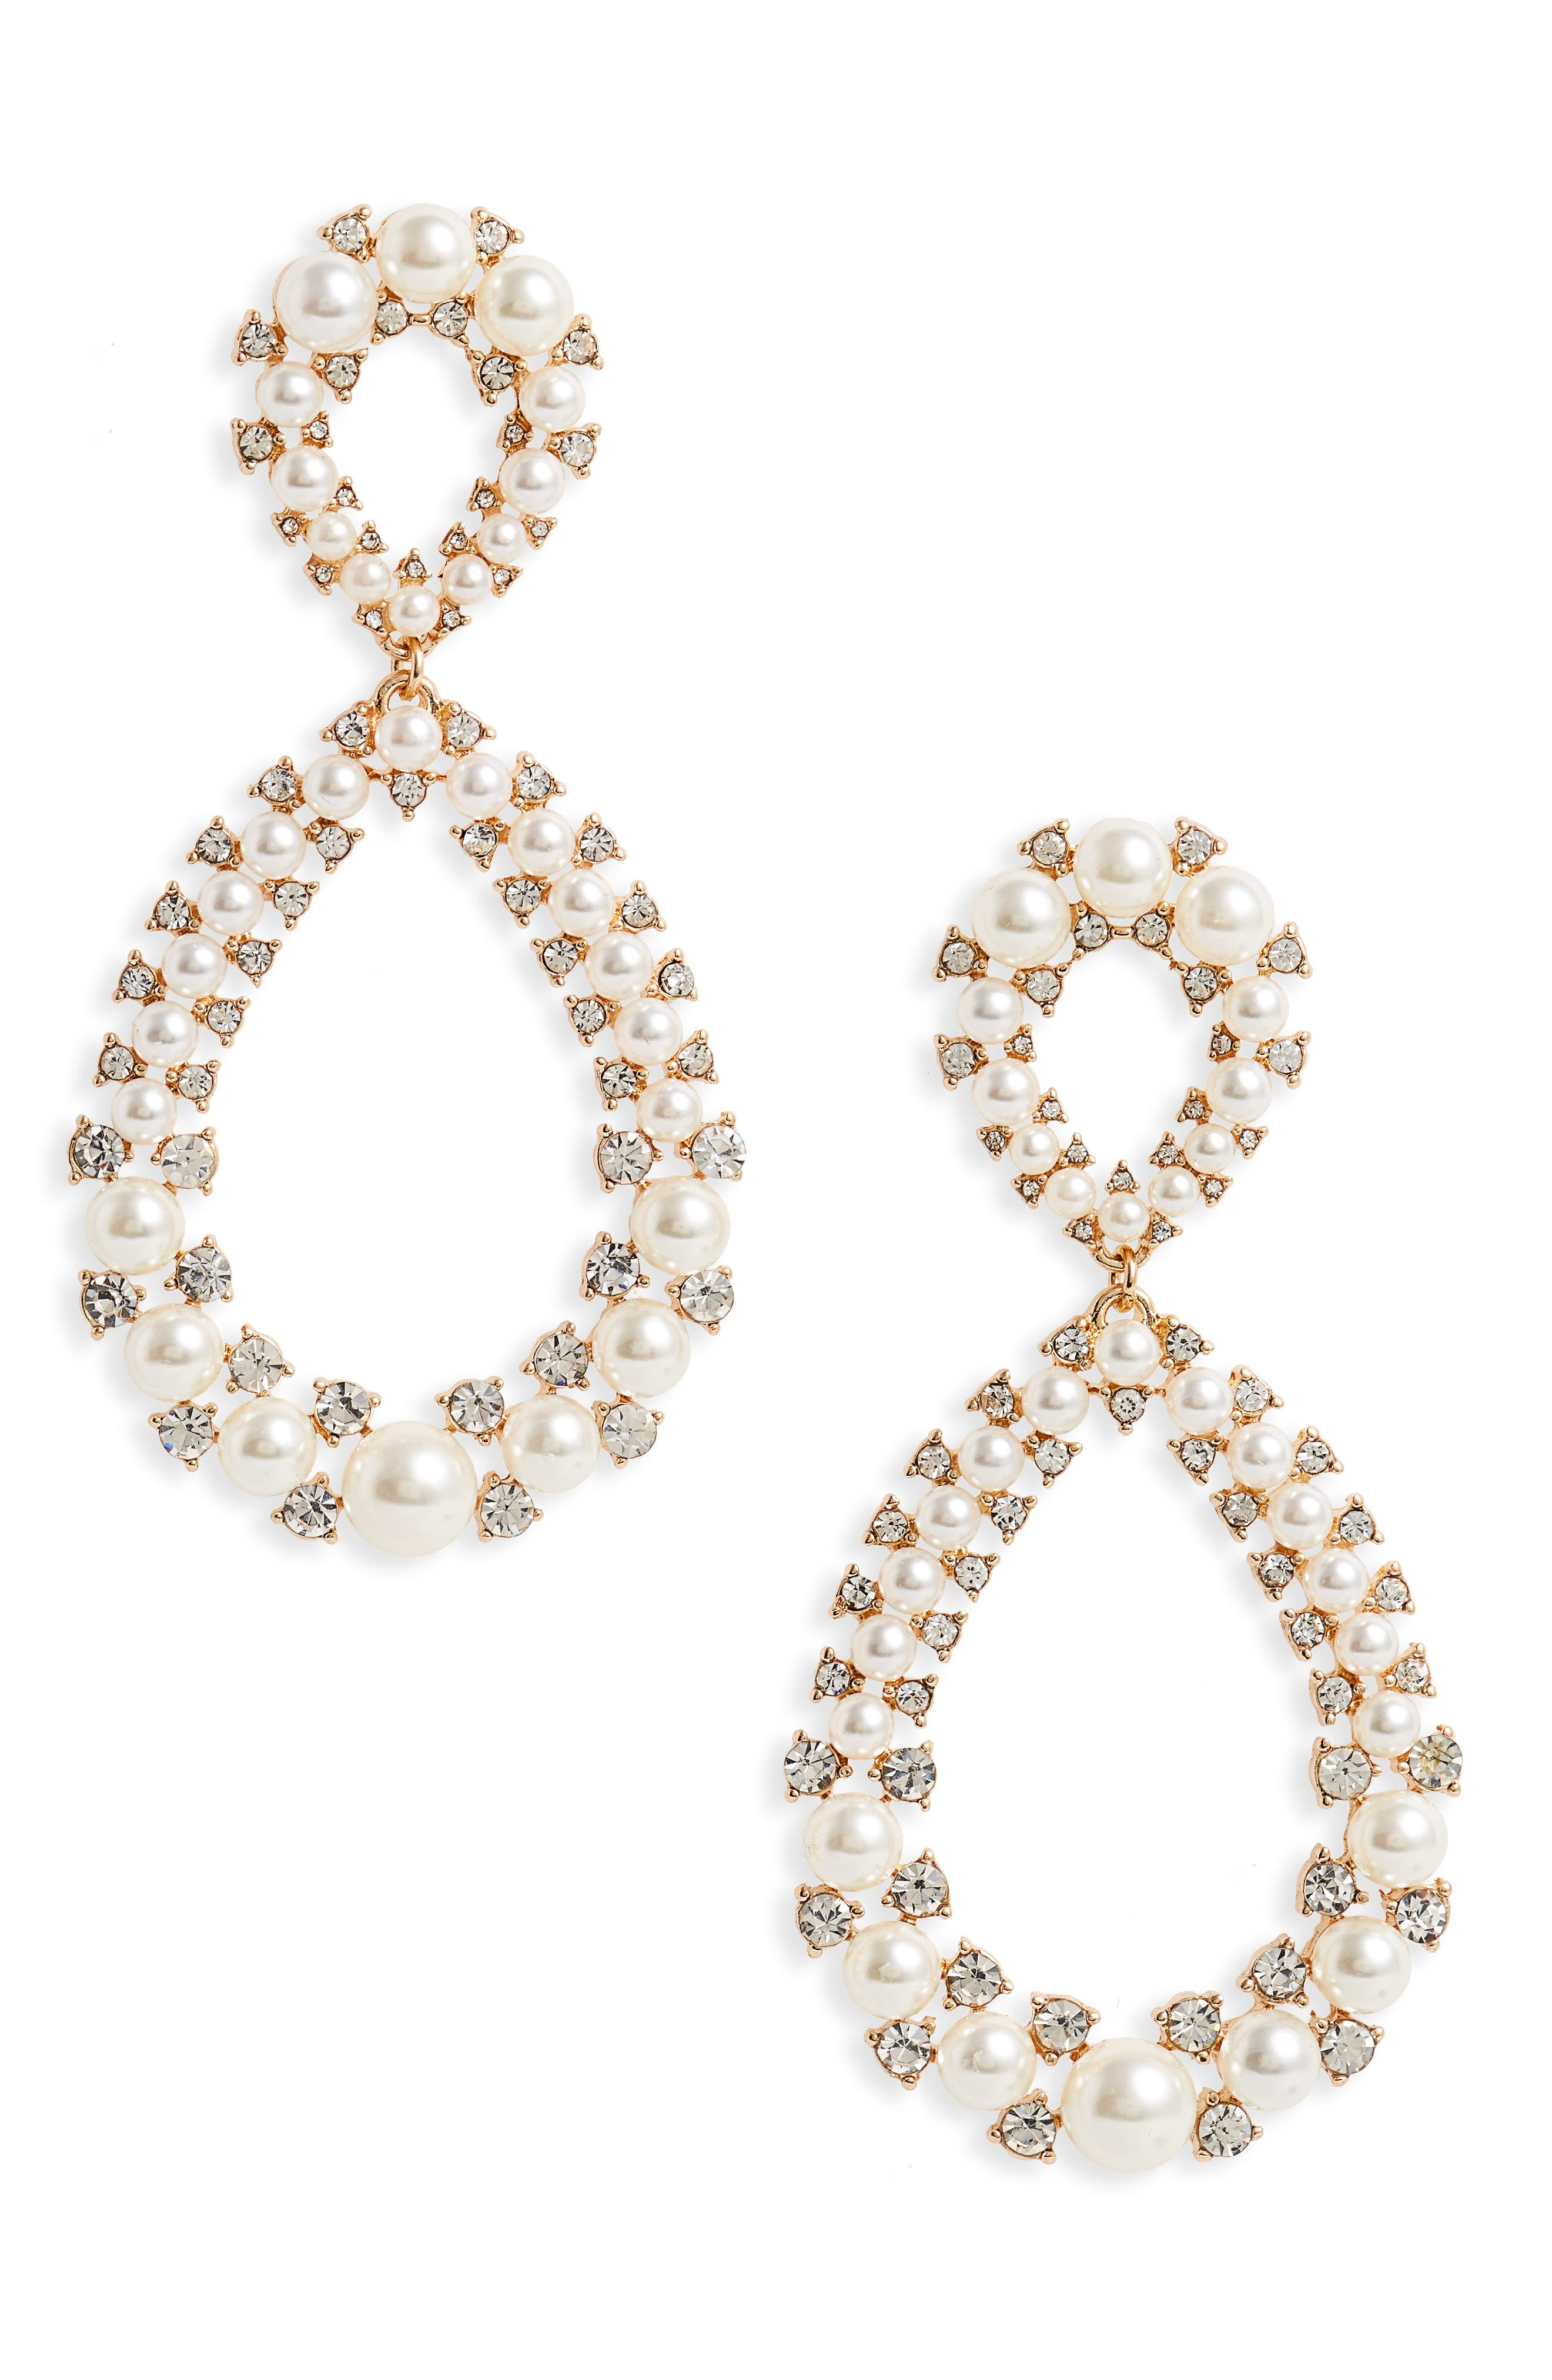 Main Image - Kitsch Imitation Pearl & Crystal Statement Earrings